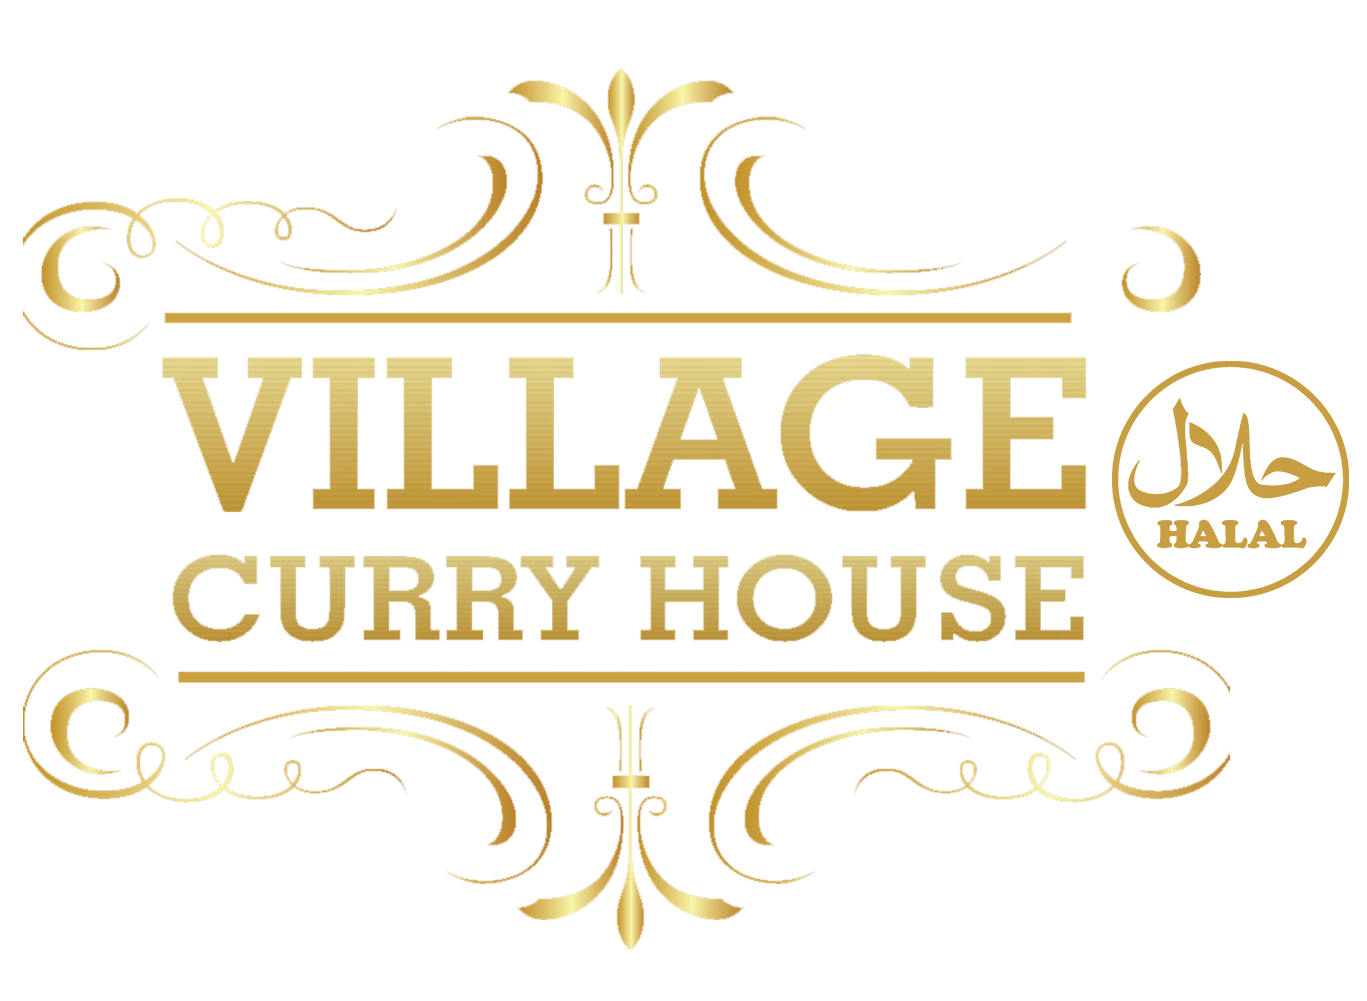 Village Curry House Village Curry House Dundee